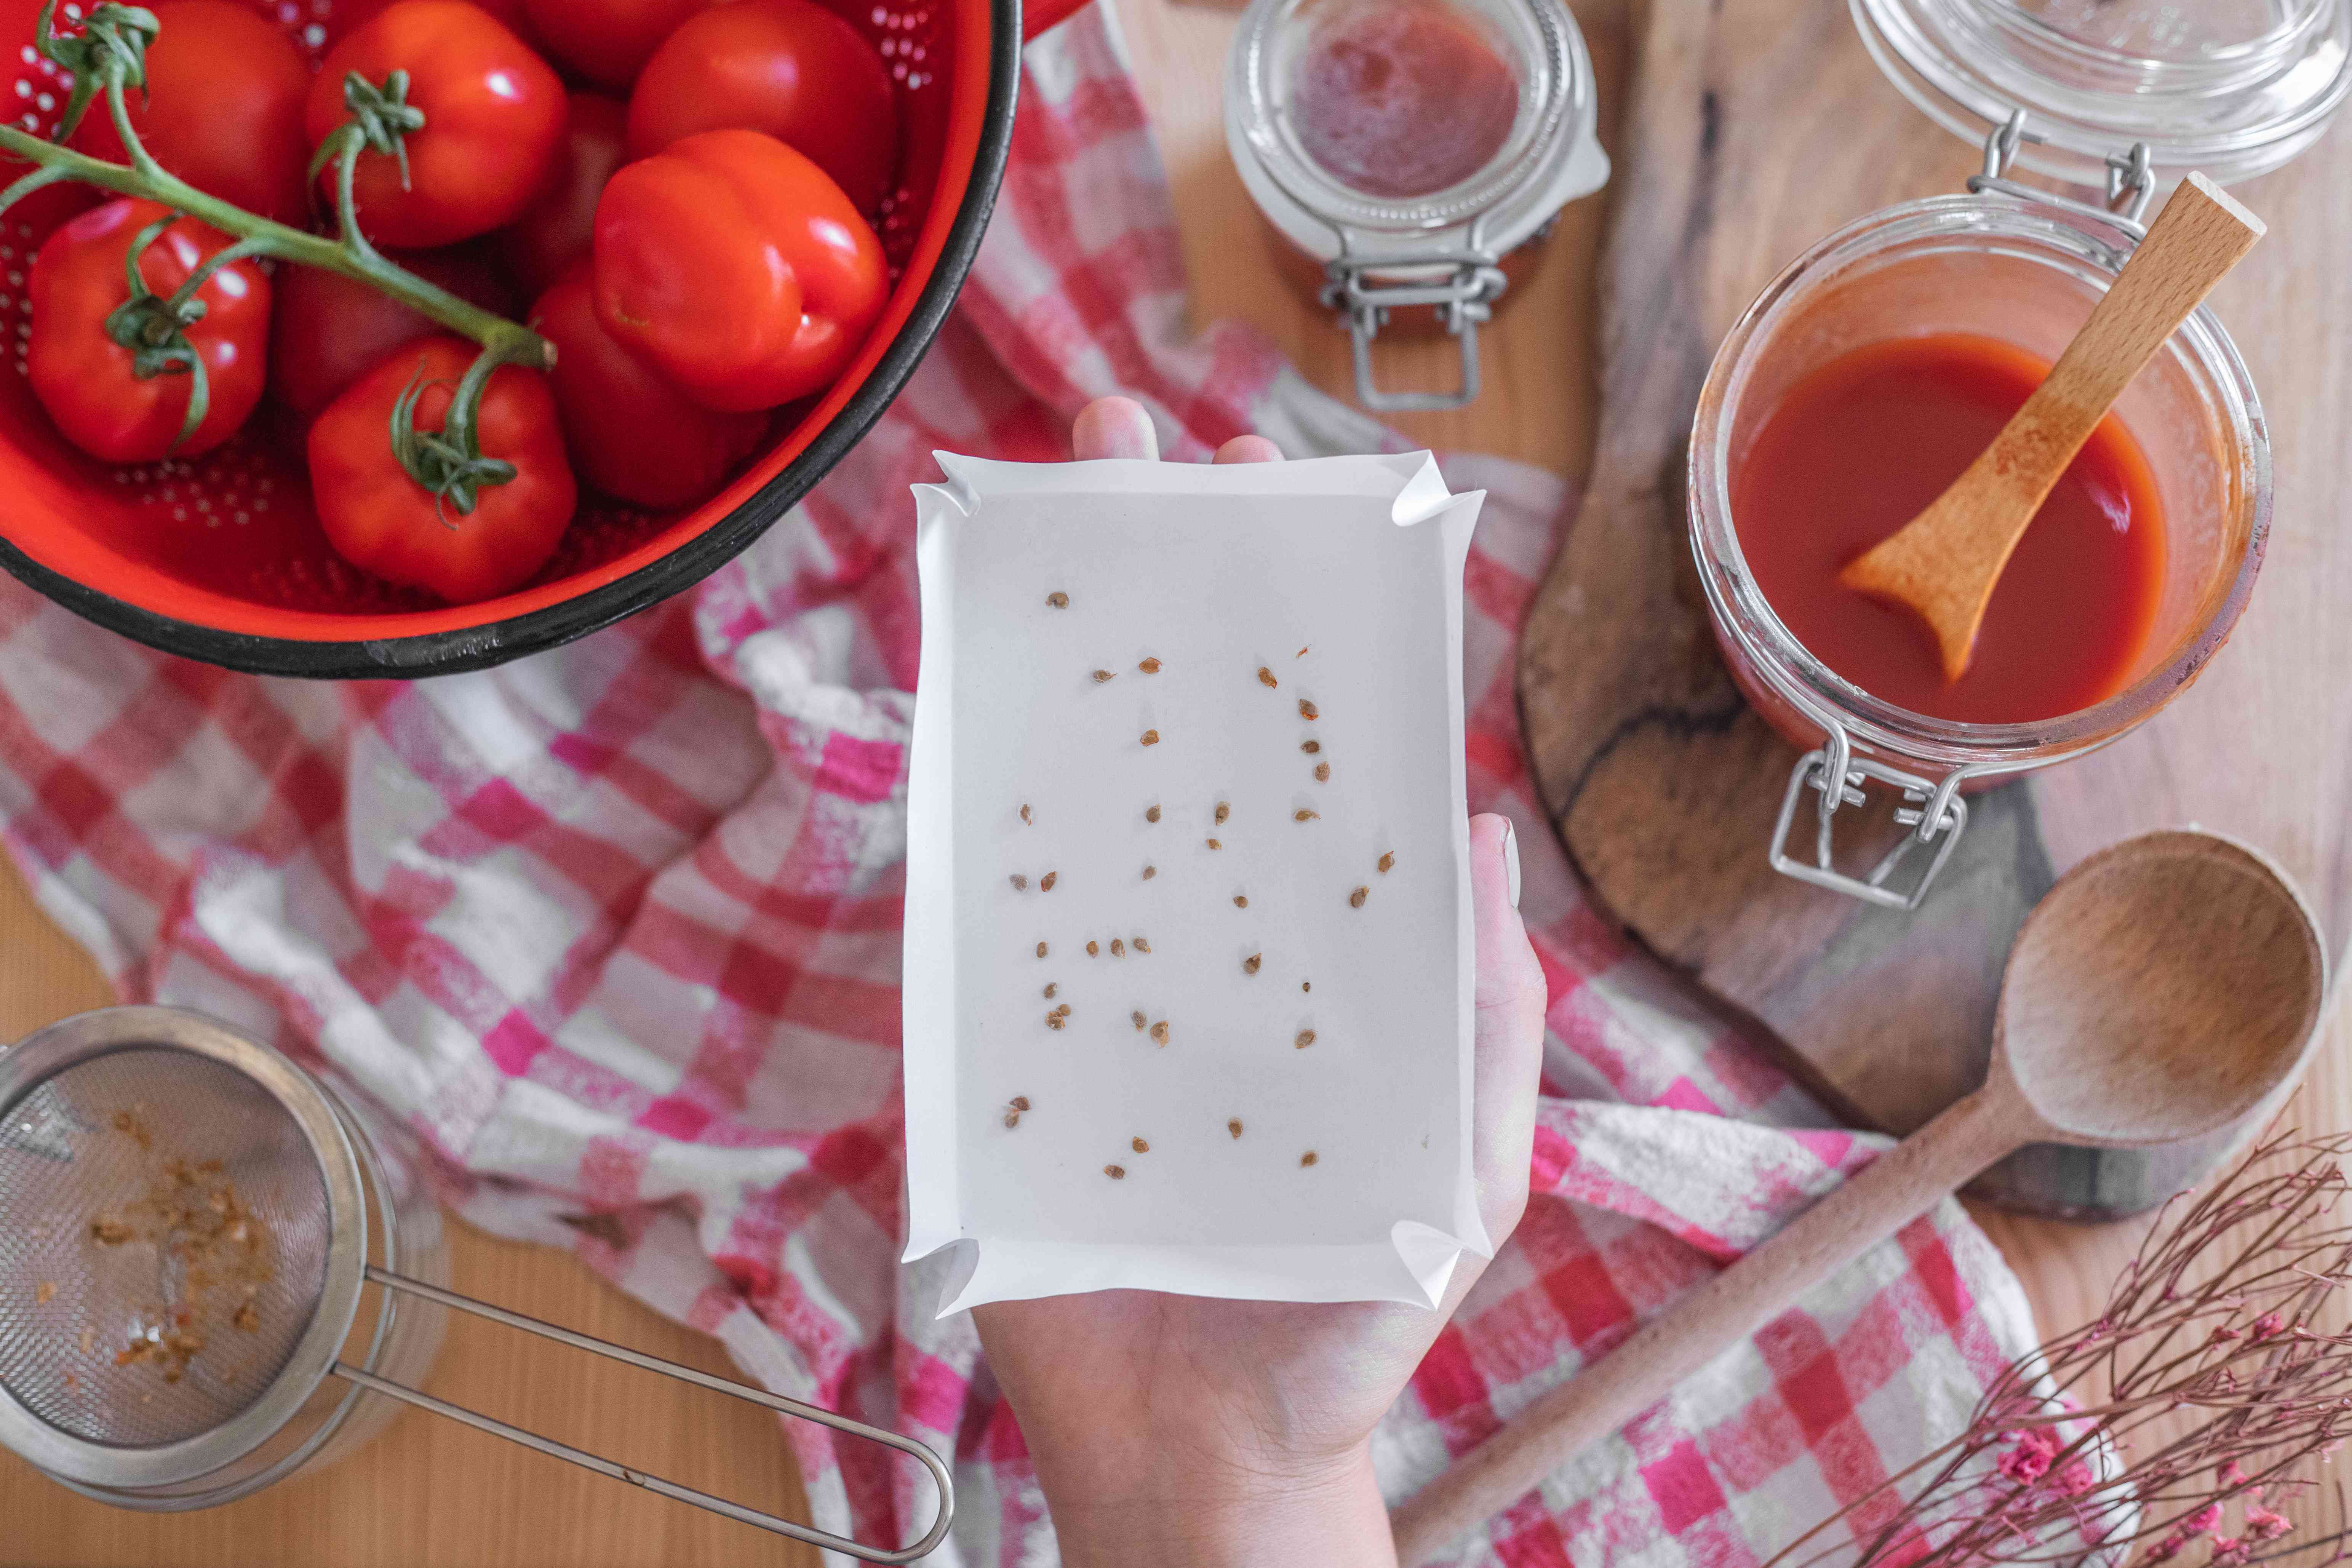 open hand holds dried tomato seeds surrounded by fresh tomatoes and kitchen equipment